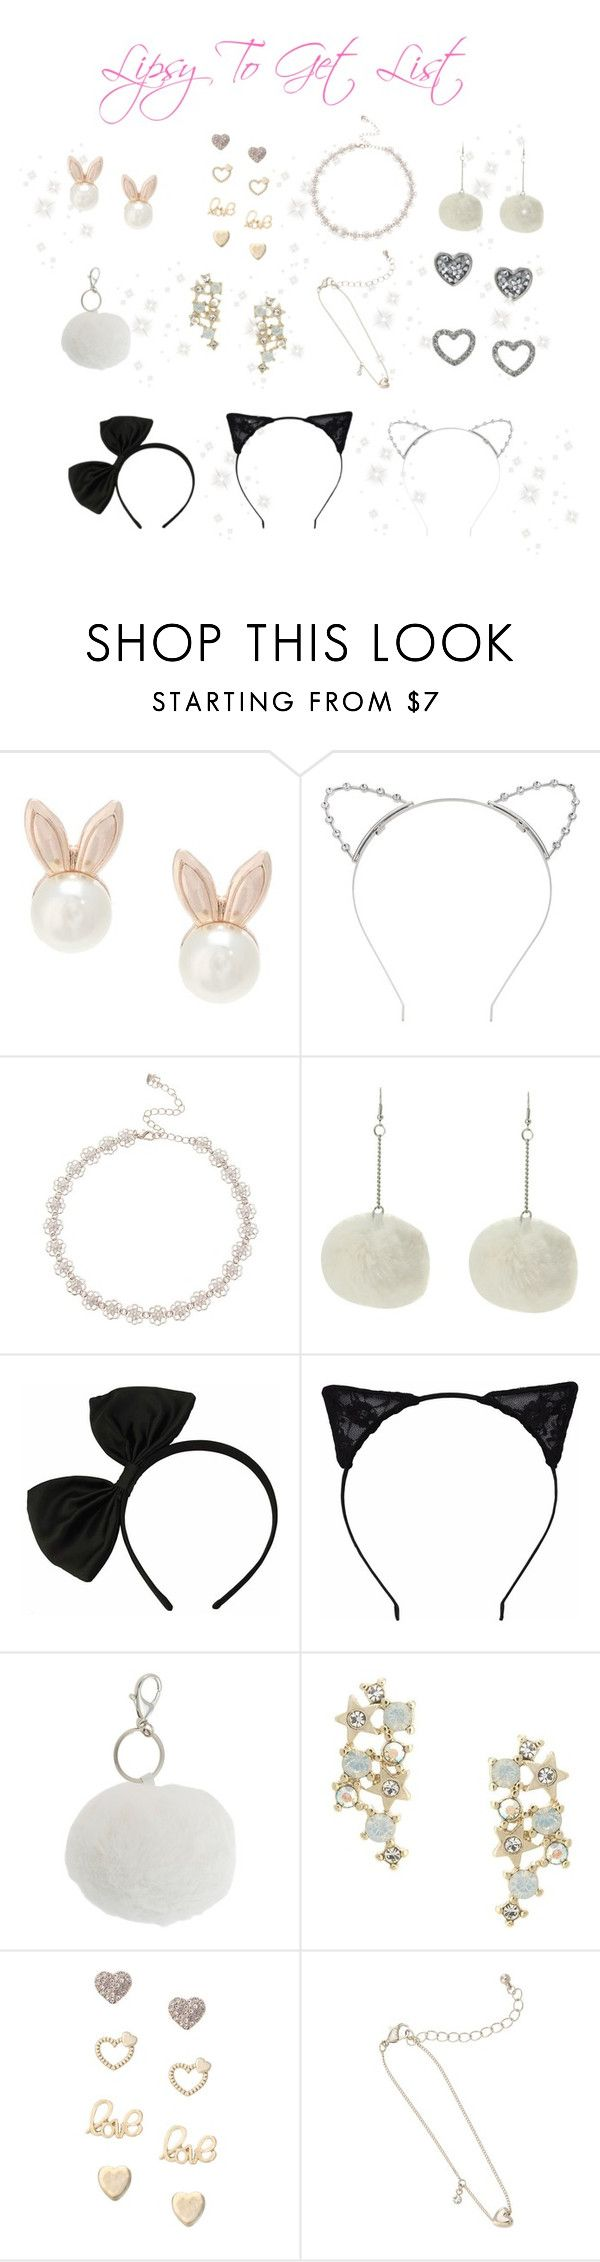 """♡ Ariana Grande Lipsy Jewelry To Get List ♡"" by kaylalovesowls ❤ liked on Polyvore featuring Lipsy"